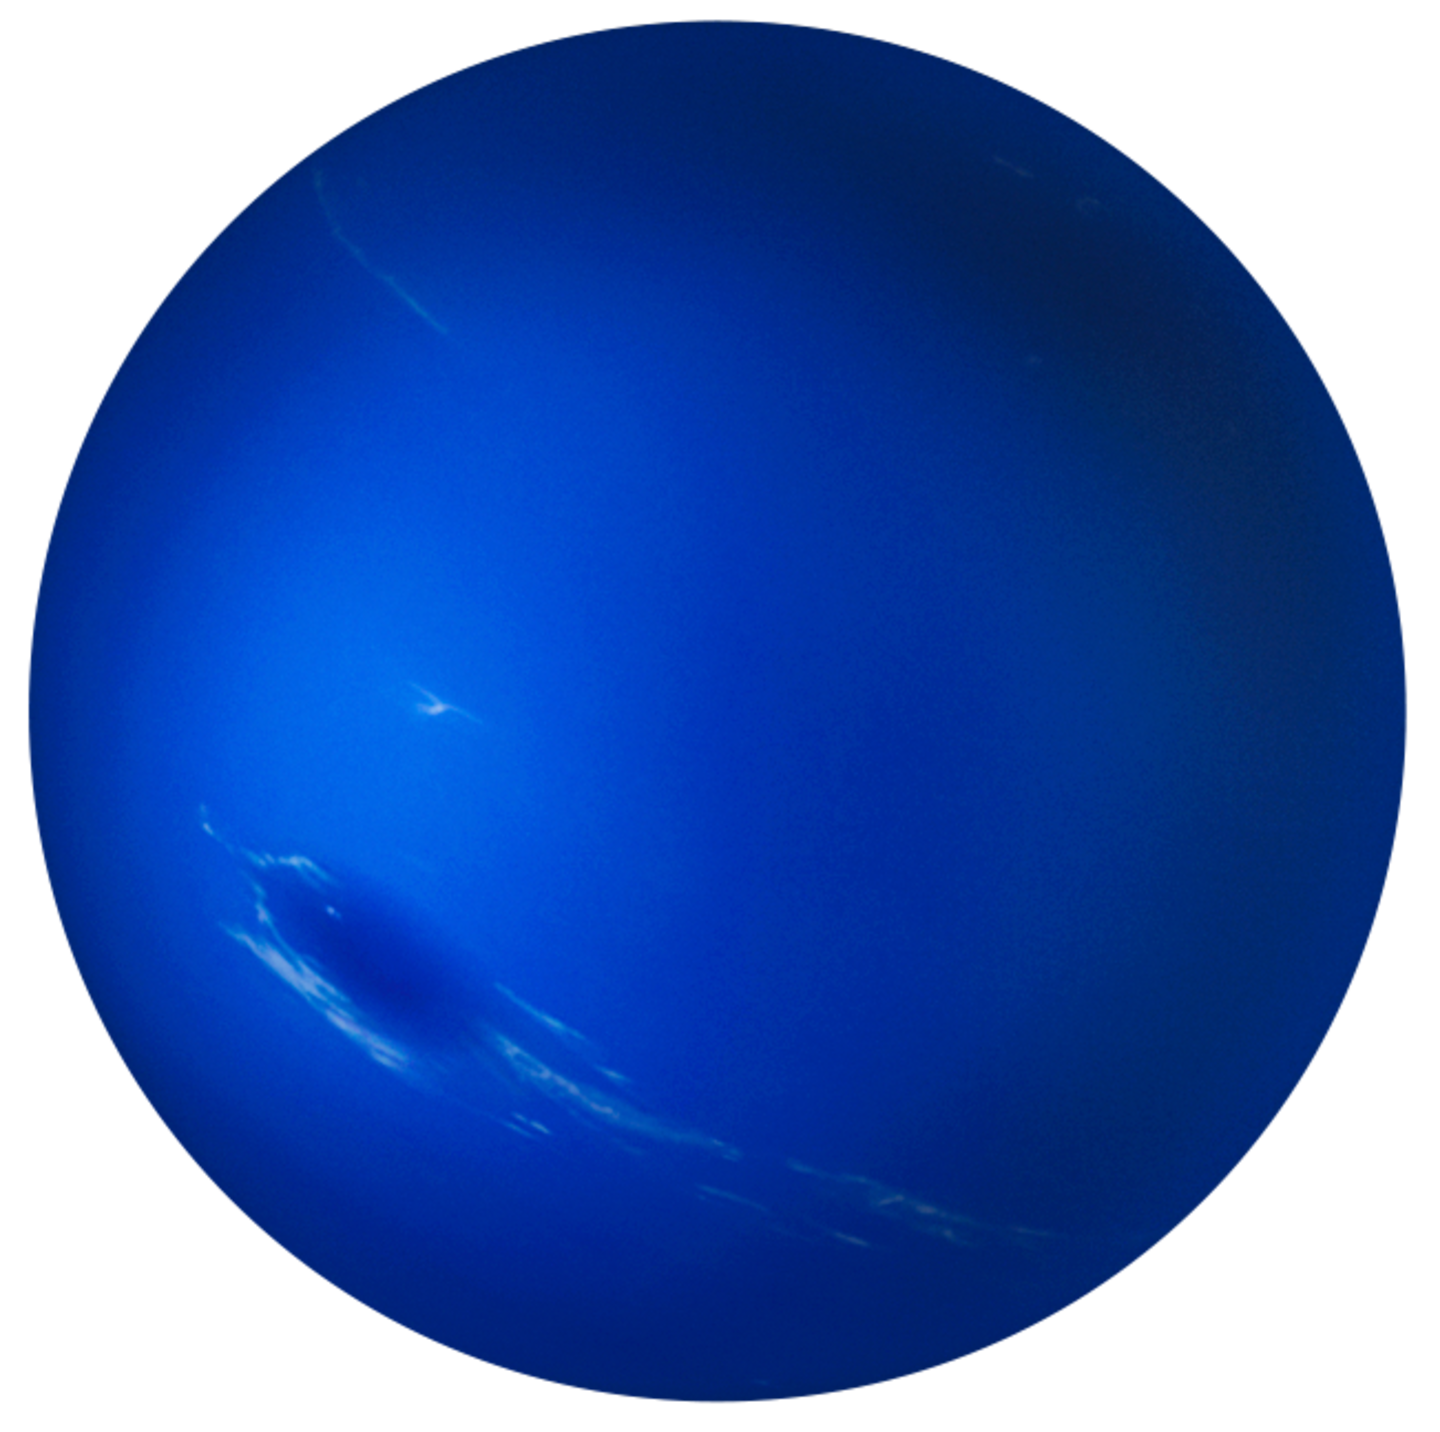 Neptune Planets Past - Pics about space